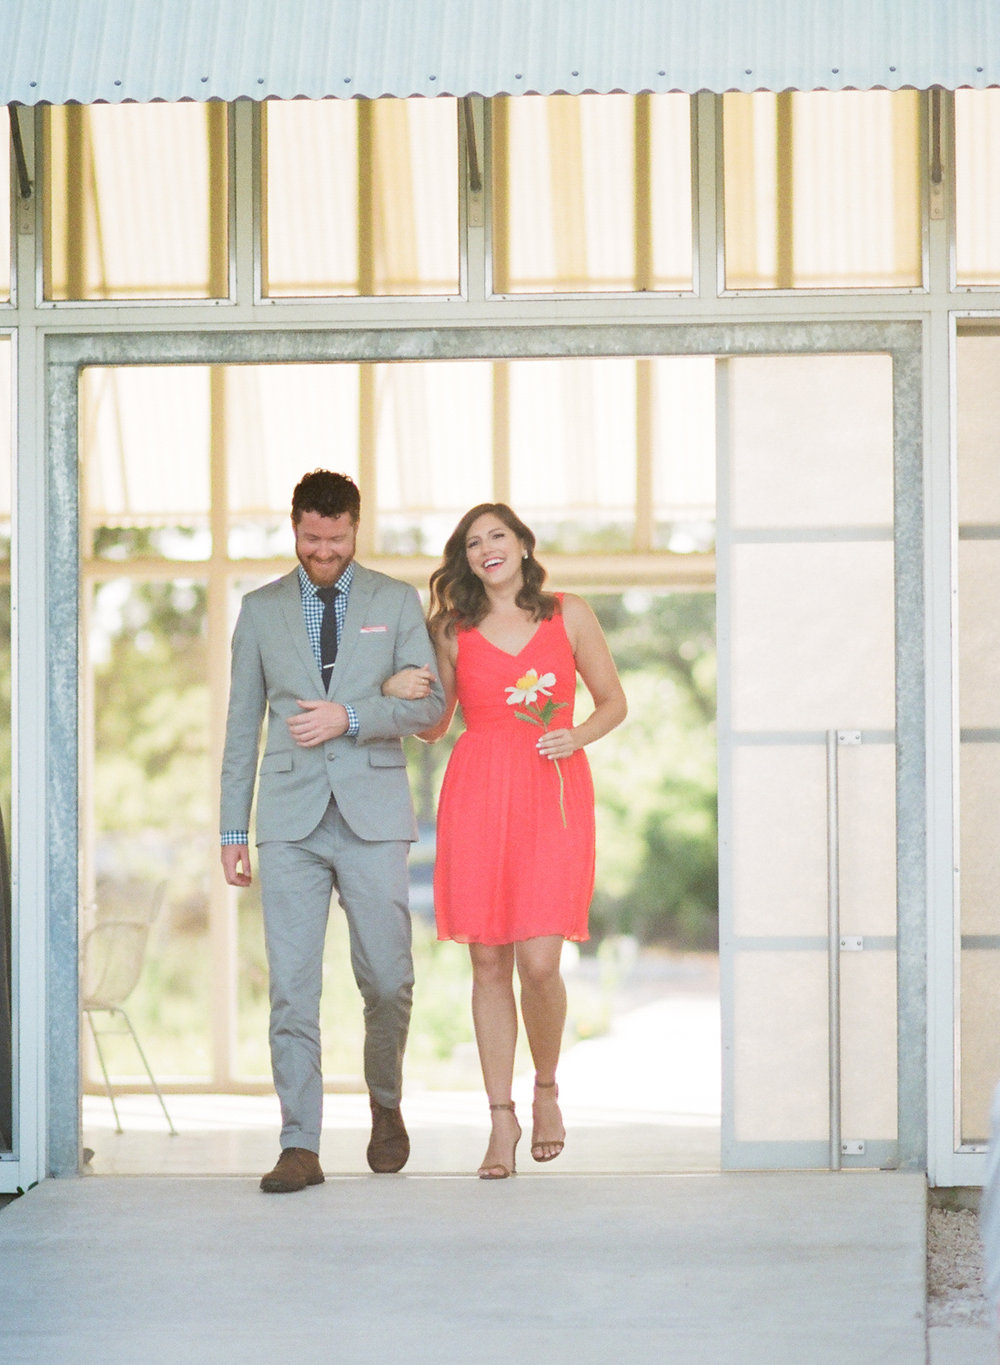 PROSPECT_HOUSE_WEDDING_AUSTIN_TX_BY_MATTHEW_MOORE_PHOTOGRAPHY_00343.jpg